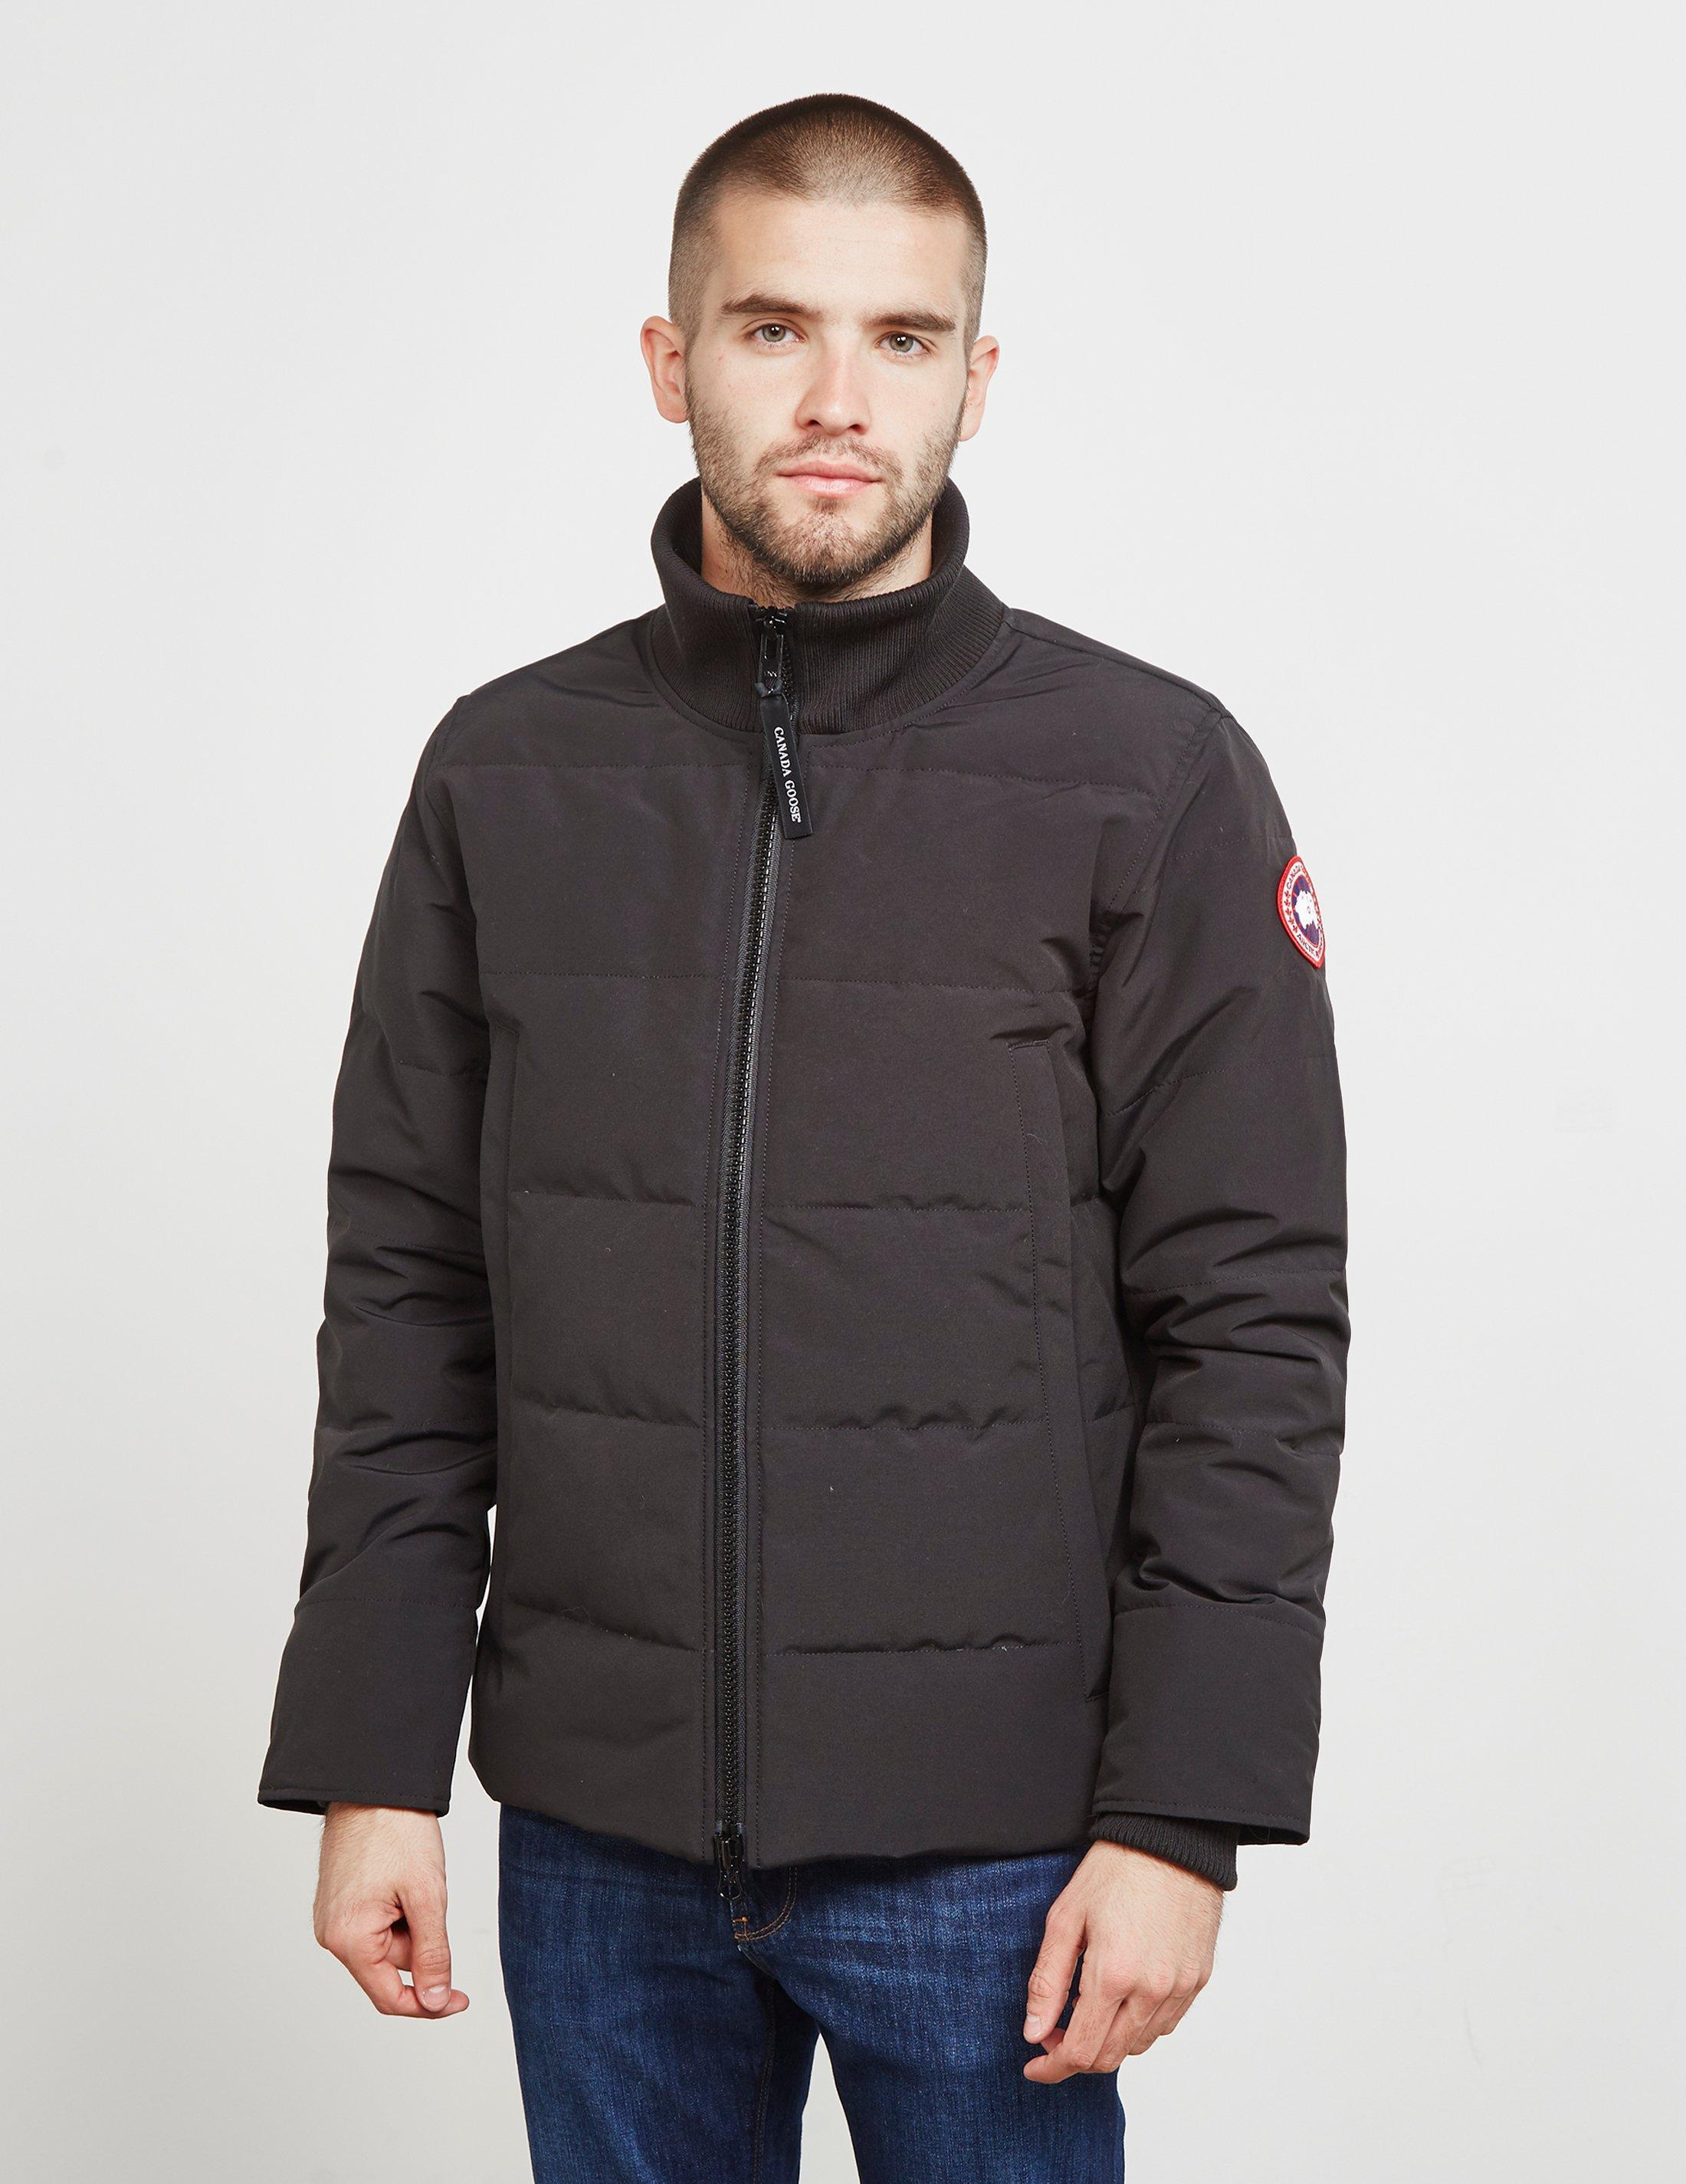 d76fa2f5941 Lyst - Canada Goose Woolford Jacket Black in Black for Men